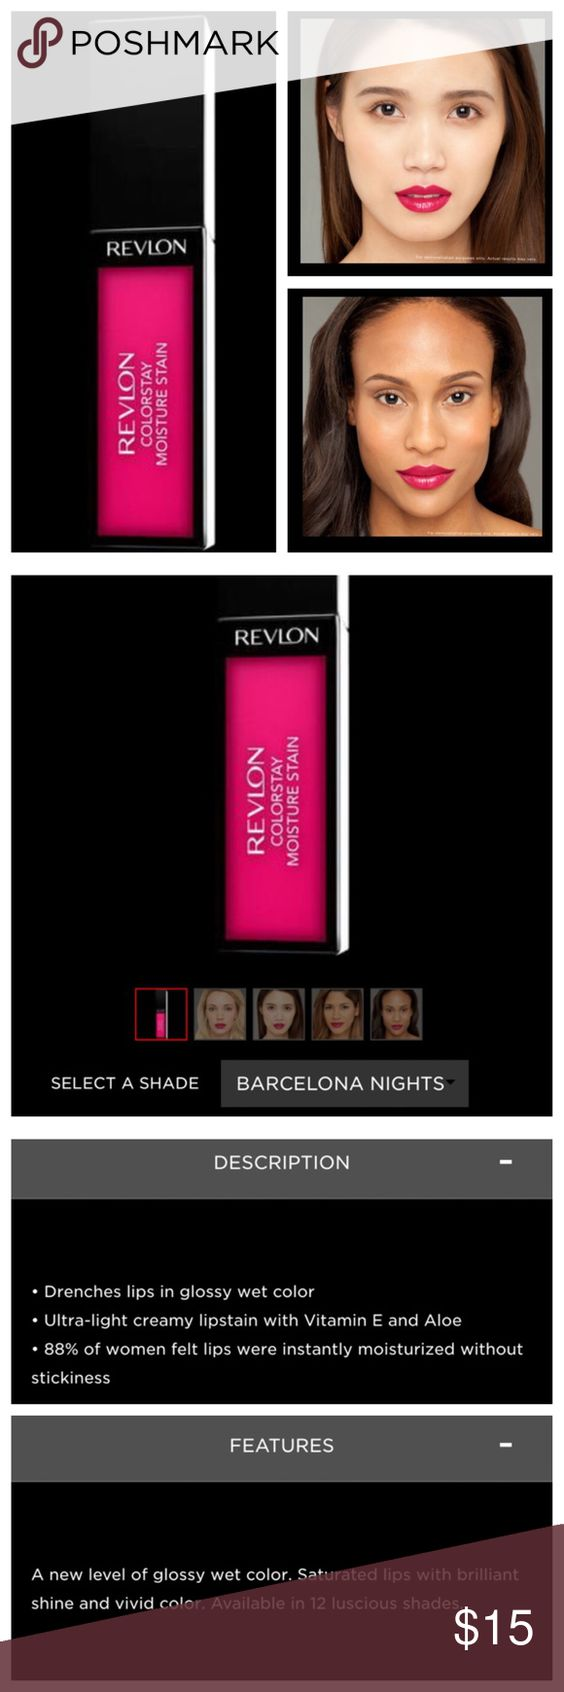 """BARCELONA NIGHTS"" Colorstay Moisture Stain ""BARCELONA NIGHTS"" Colorstay Moisture Stain, by Revlon. Beautiful, silky lip gloss and stain in one. A stunning hot Pink/Red shade that's sure to turn heads! See all details above in photos. SEALED, never swatched. #LoveIsOn.  Price firm unless bundled. Photo credits: Revlon.com  Revlon Makeup Lip Balm & Gloss"